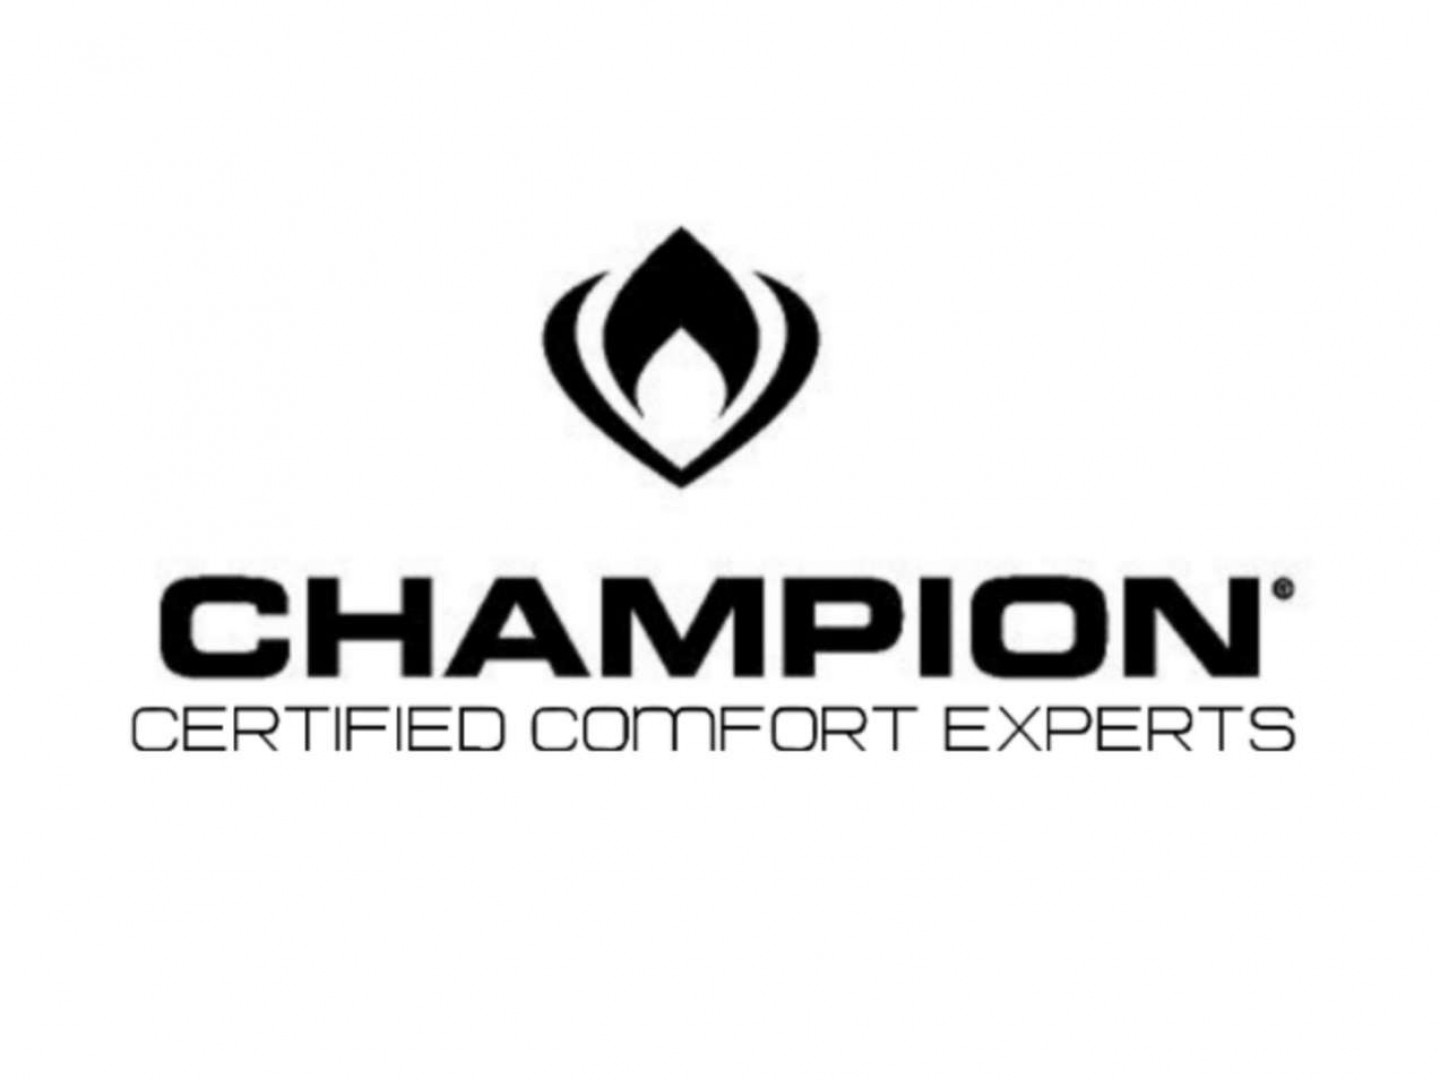 We are the Central Texas CHAMPION Certified Comfort Experts